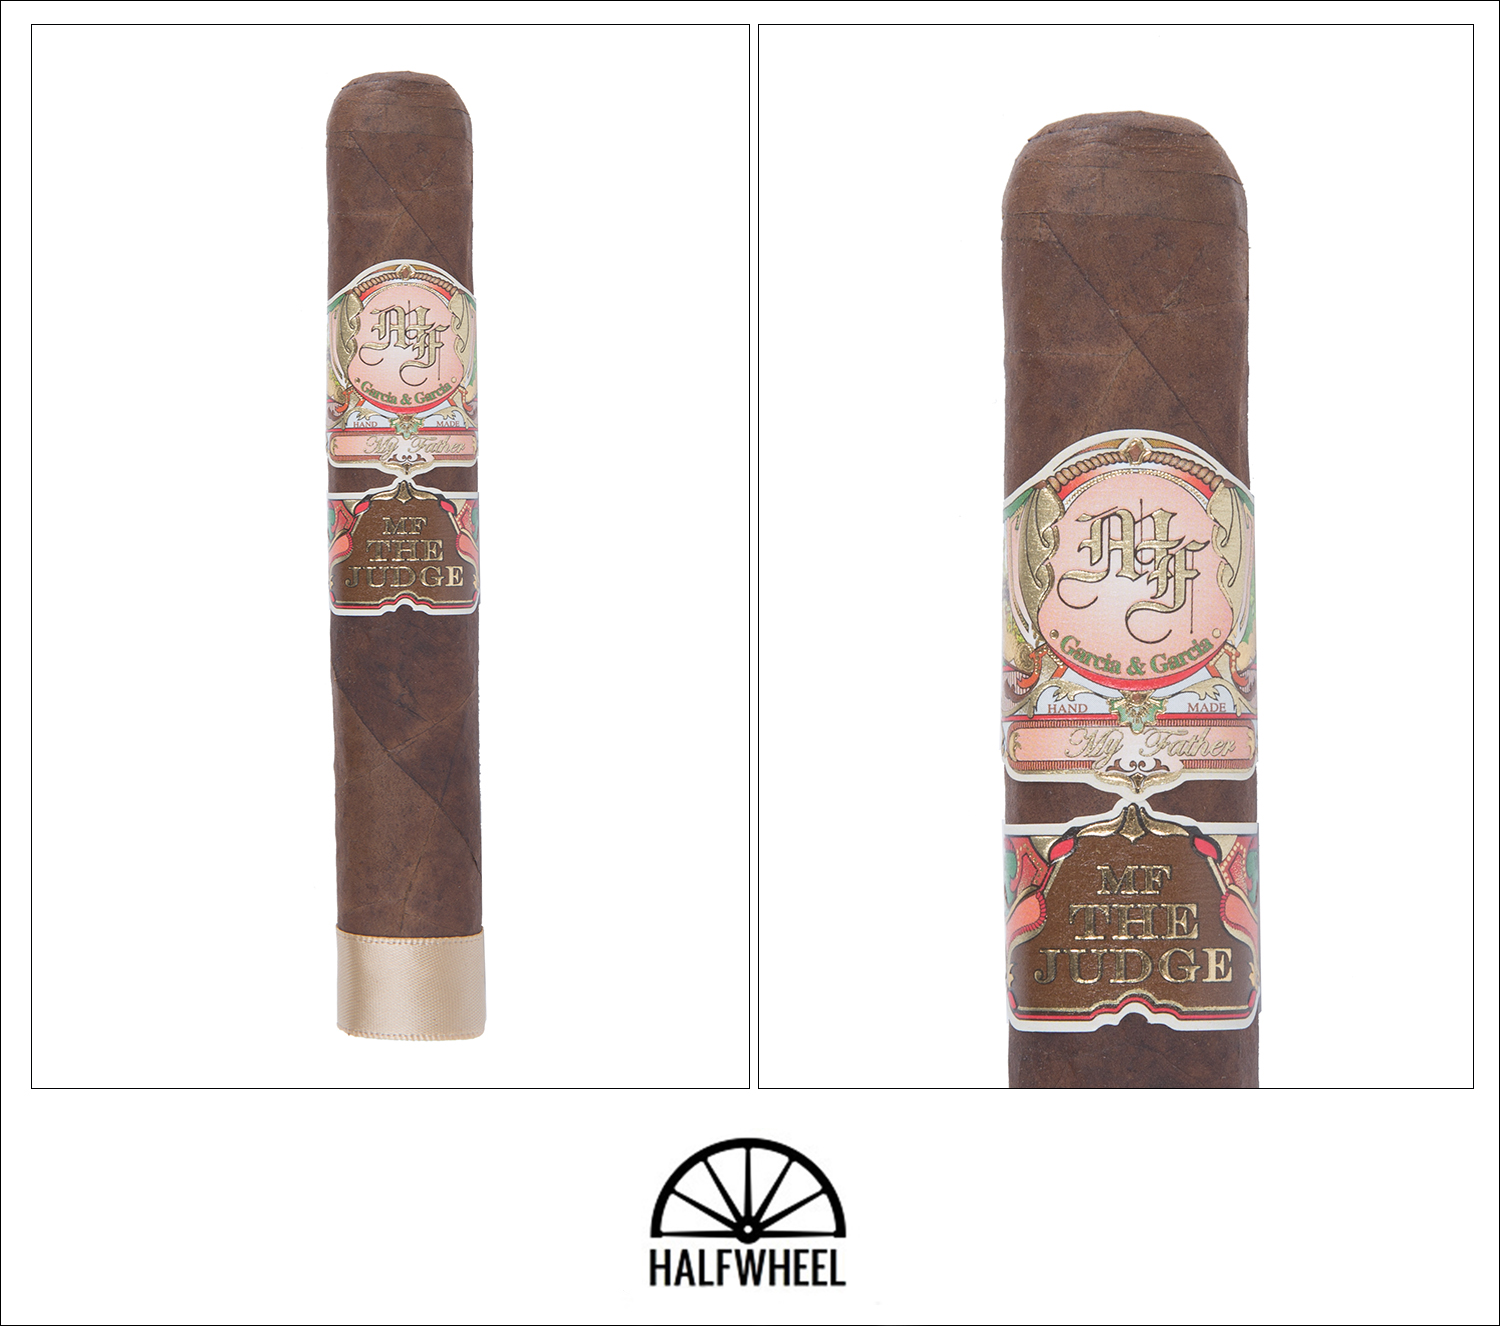 my-father-cigars-the-judge-6-x-56-1